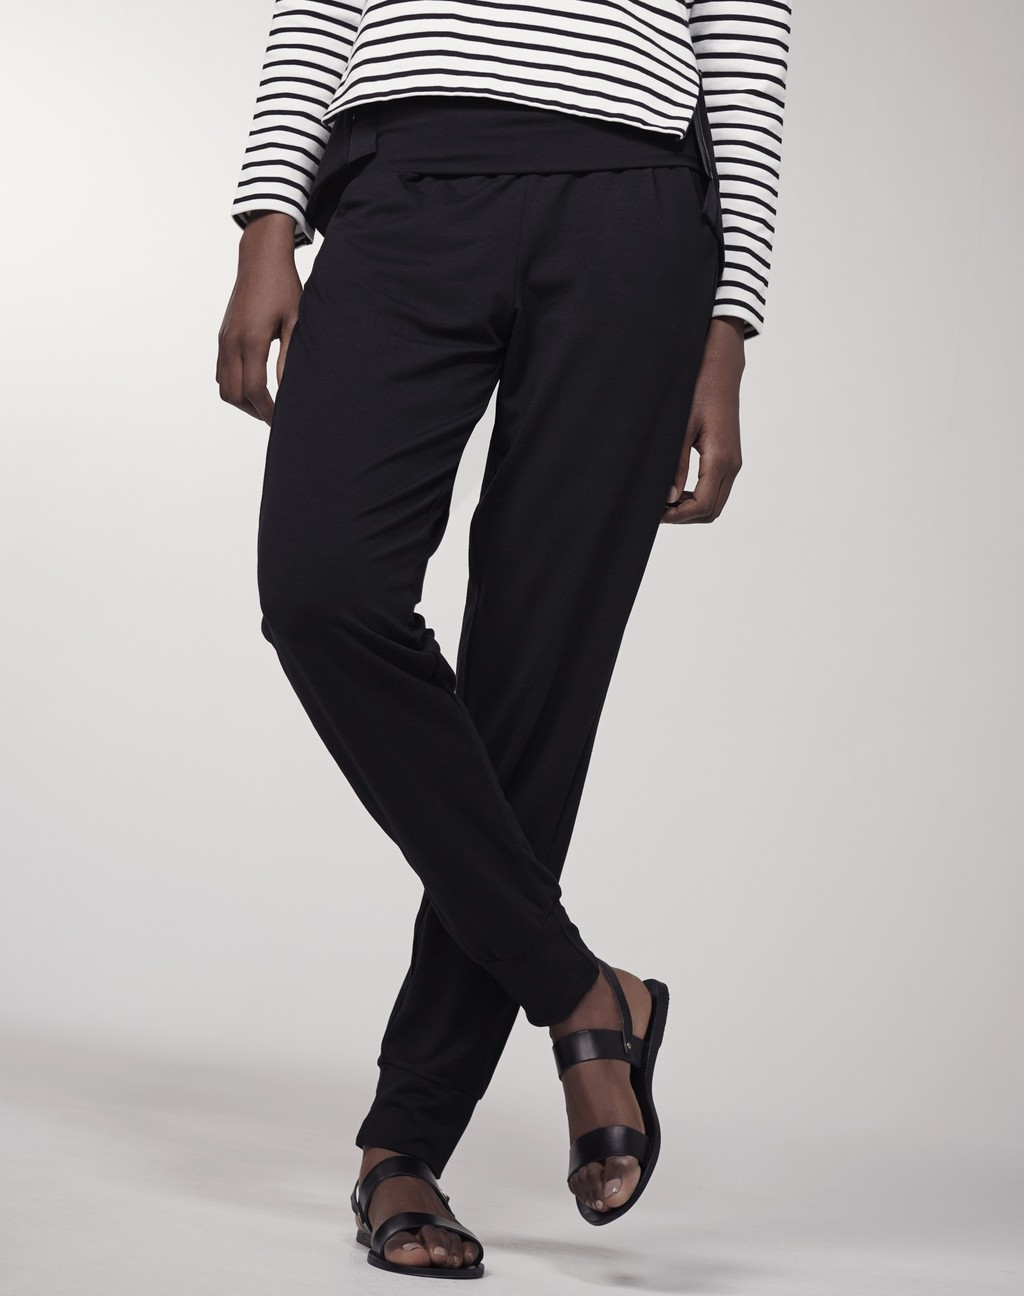 Roll Top Lounge Jersey Jogger Black - length: standard; pattern: plain; waist: mid/regular rise; predominant colour: black; fibres: polyester/polyamide - stretch; fit: tapered; pattern type: fabric; texture group: jersey - stretchy/drapey; style: standard; occasions: creative work; season: s/s 2016; wardrobe: basic